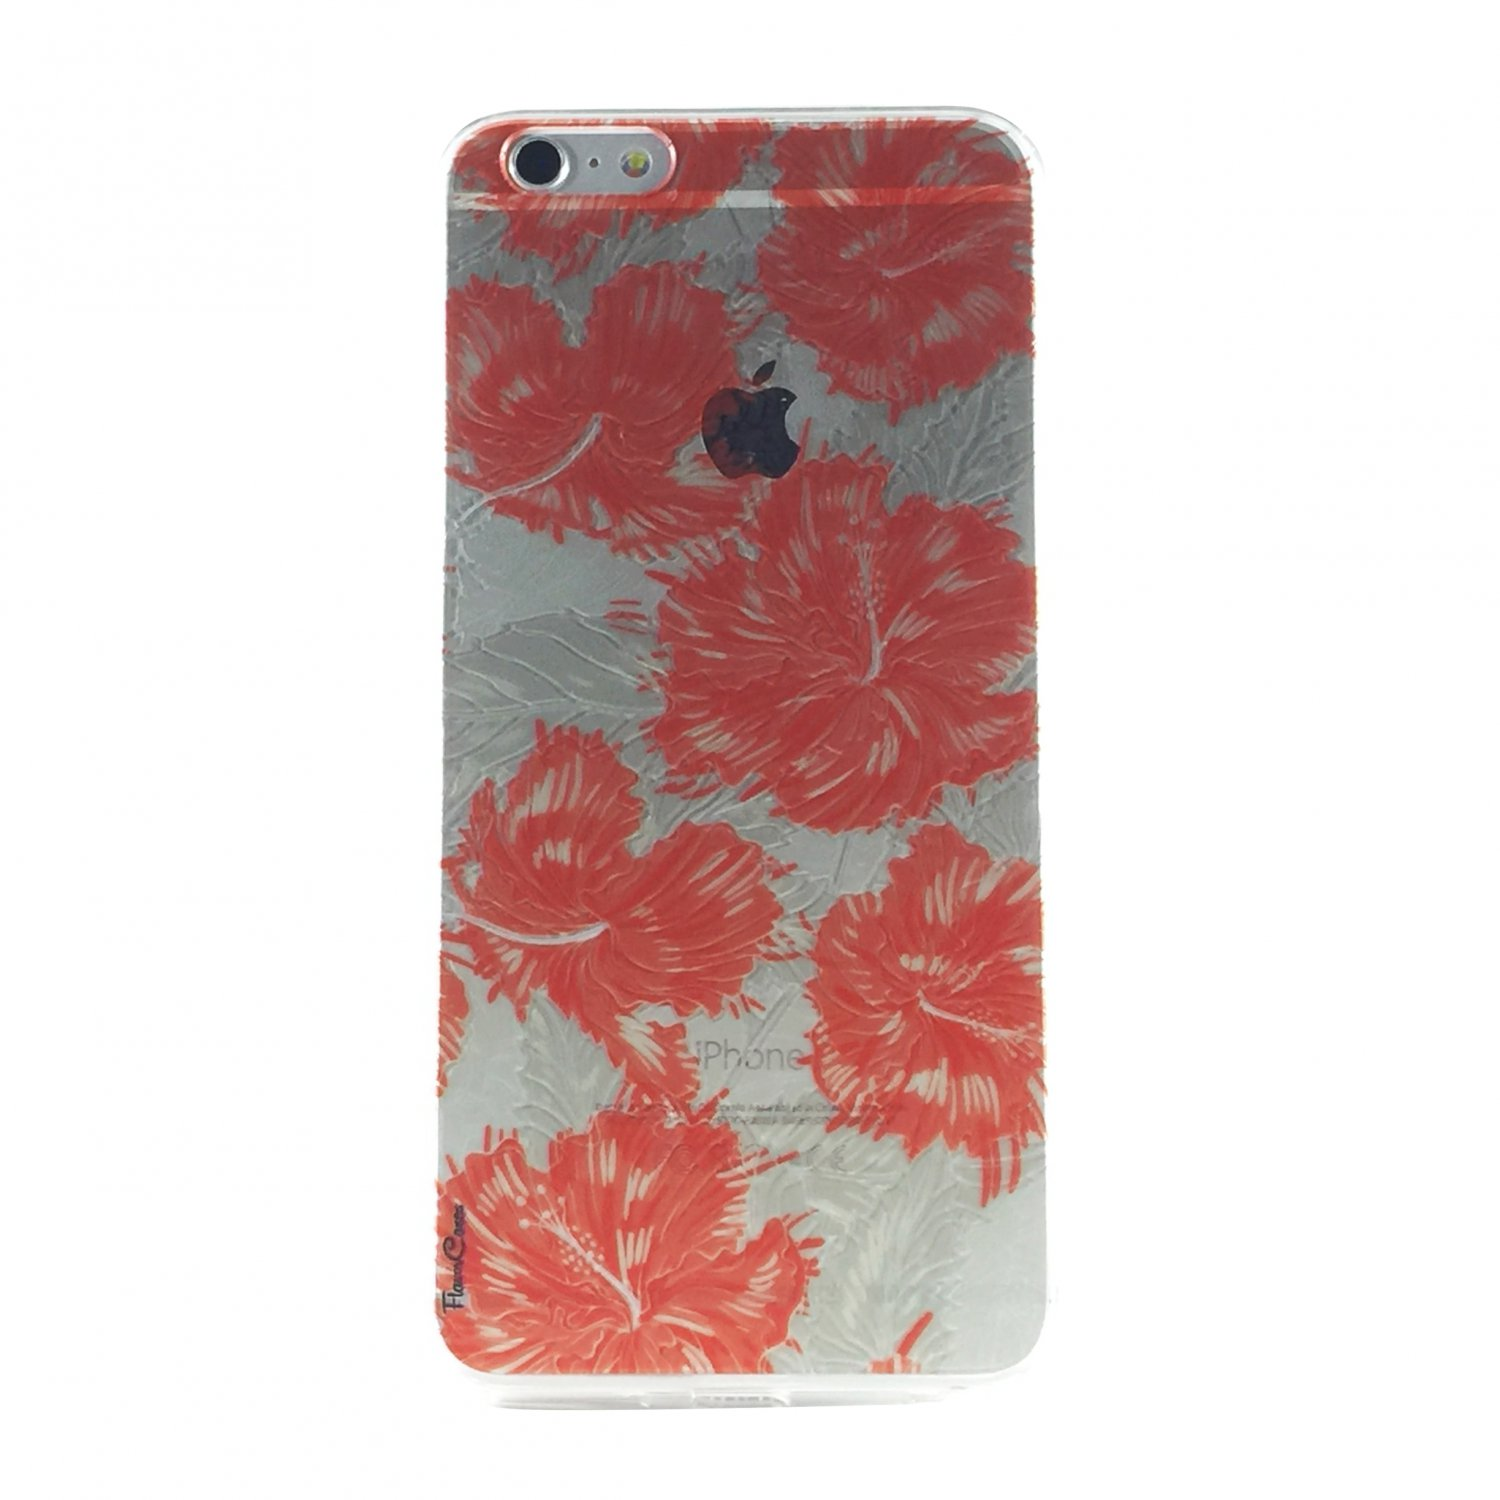 Hibiscus Valley - New Floral Cell Phone Case iPhone 6 plus ip6 plus